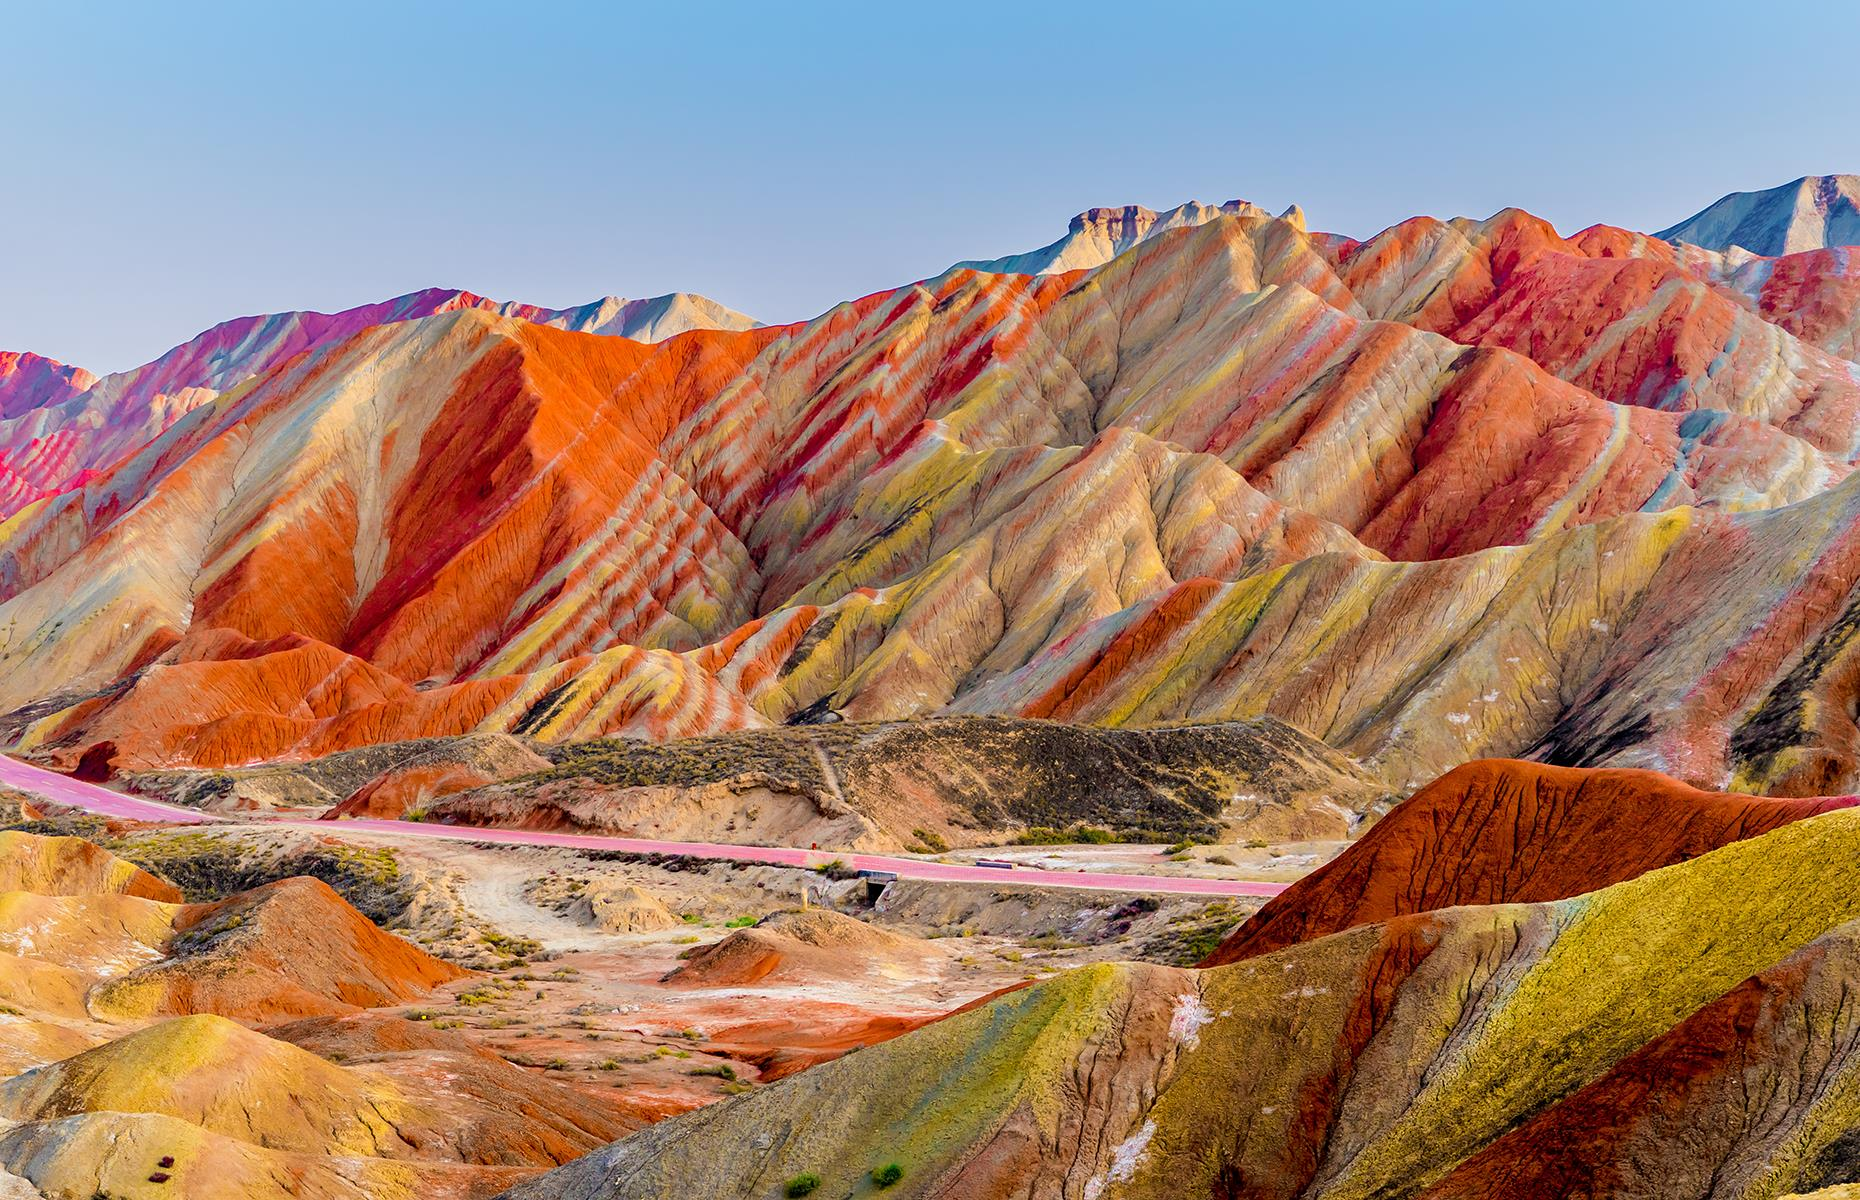 Slide 43 of 43: The rainbow-hued mountains in Zhangye National Geopark look just like an artist's brush strokes. Part of a UNESCO World Heritage Site, this stunning formation was created by natural erosion, when layers of sand, silt, iron and minerals blended together to create a kaleidoscope of colors. The incredible park appears to have been decorated by Mother Nature herself.